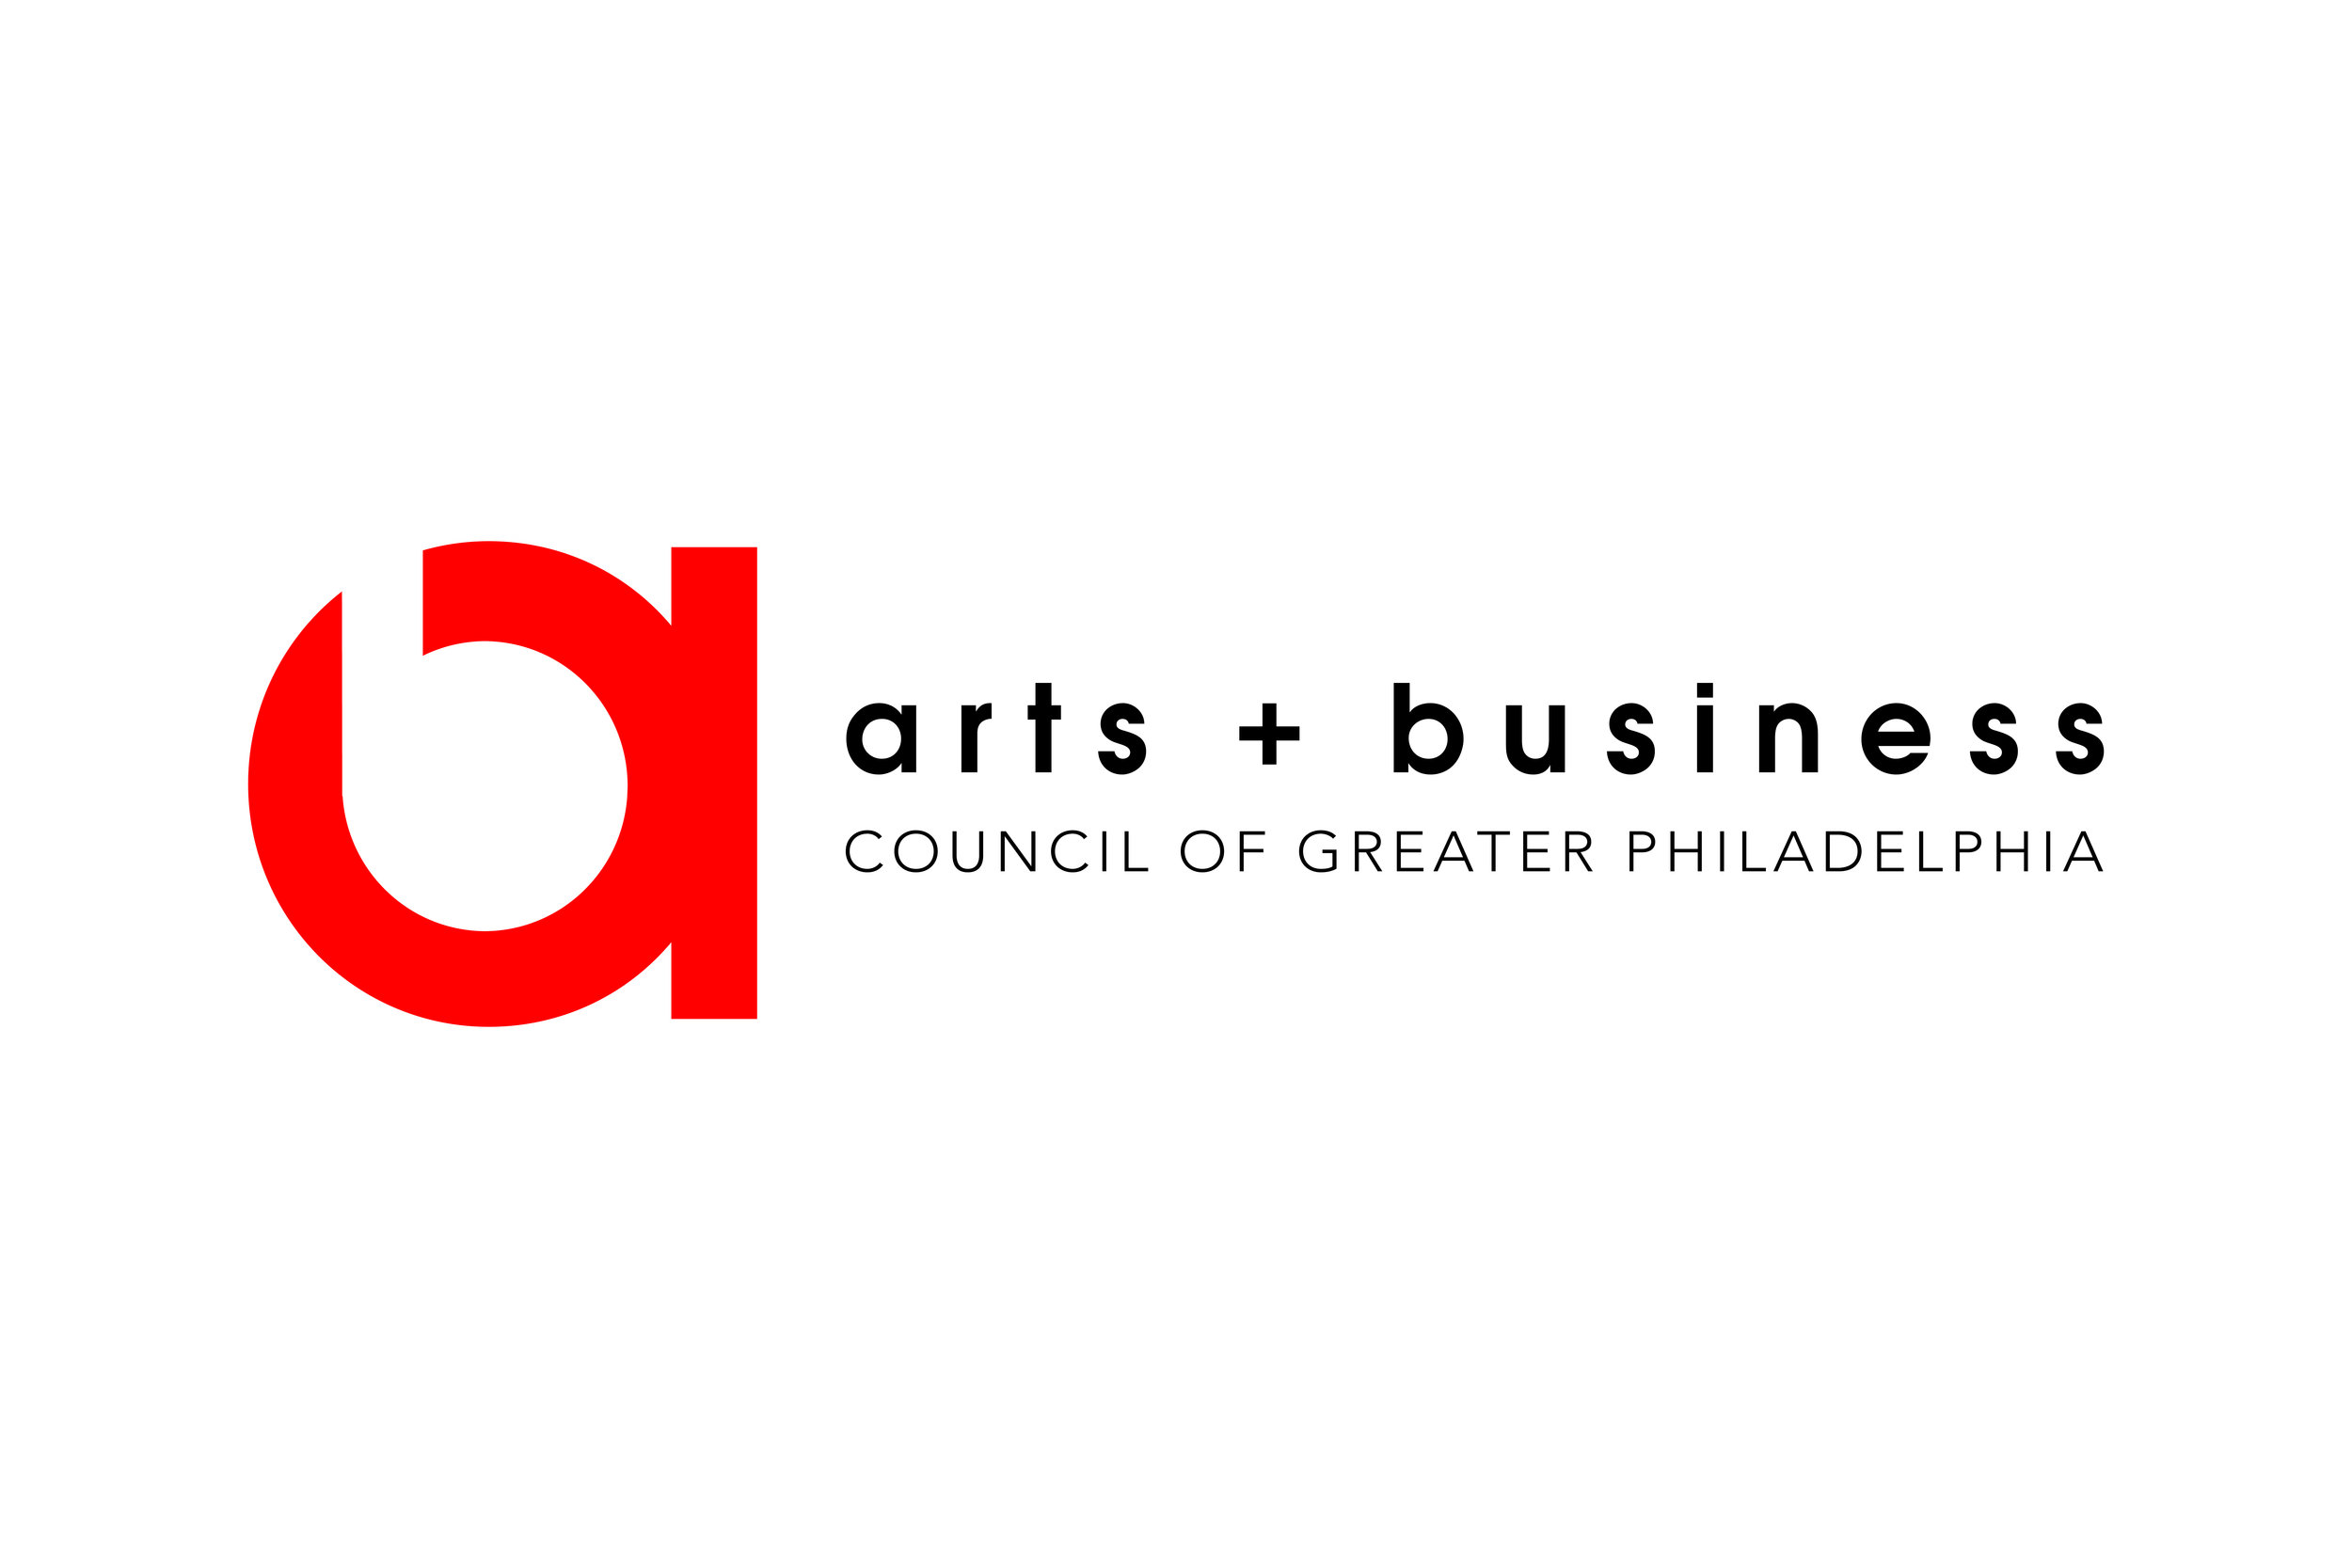 The Arts + Business Council  catalyzes our region's creative advantage by connecting networks and knowledge through immersive leadership, innovation and social impact programming. When analytical thinkers come together with experiential thinkers, unexpected new ideas emerge that spark economic development and creative leadership. Leveraging the growing movement to integrate art and design with innovation across business, startup and nonprofit spaces, we help more leaders and organizations use it to their creative advantage.